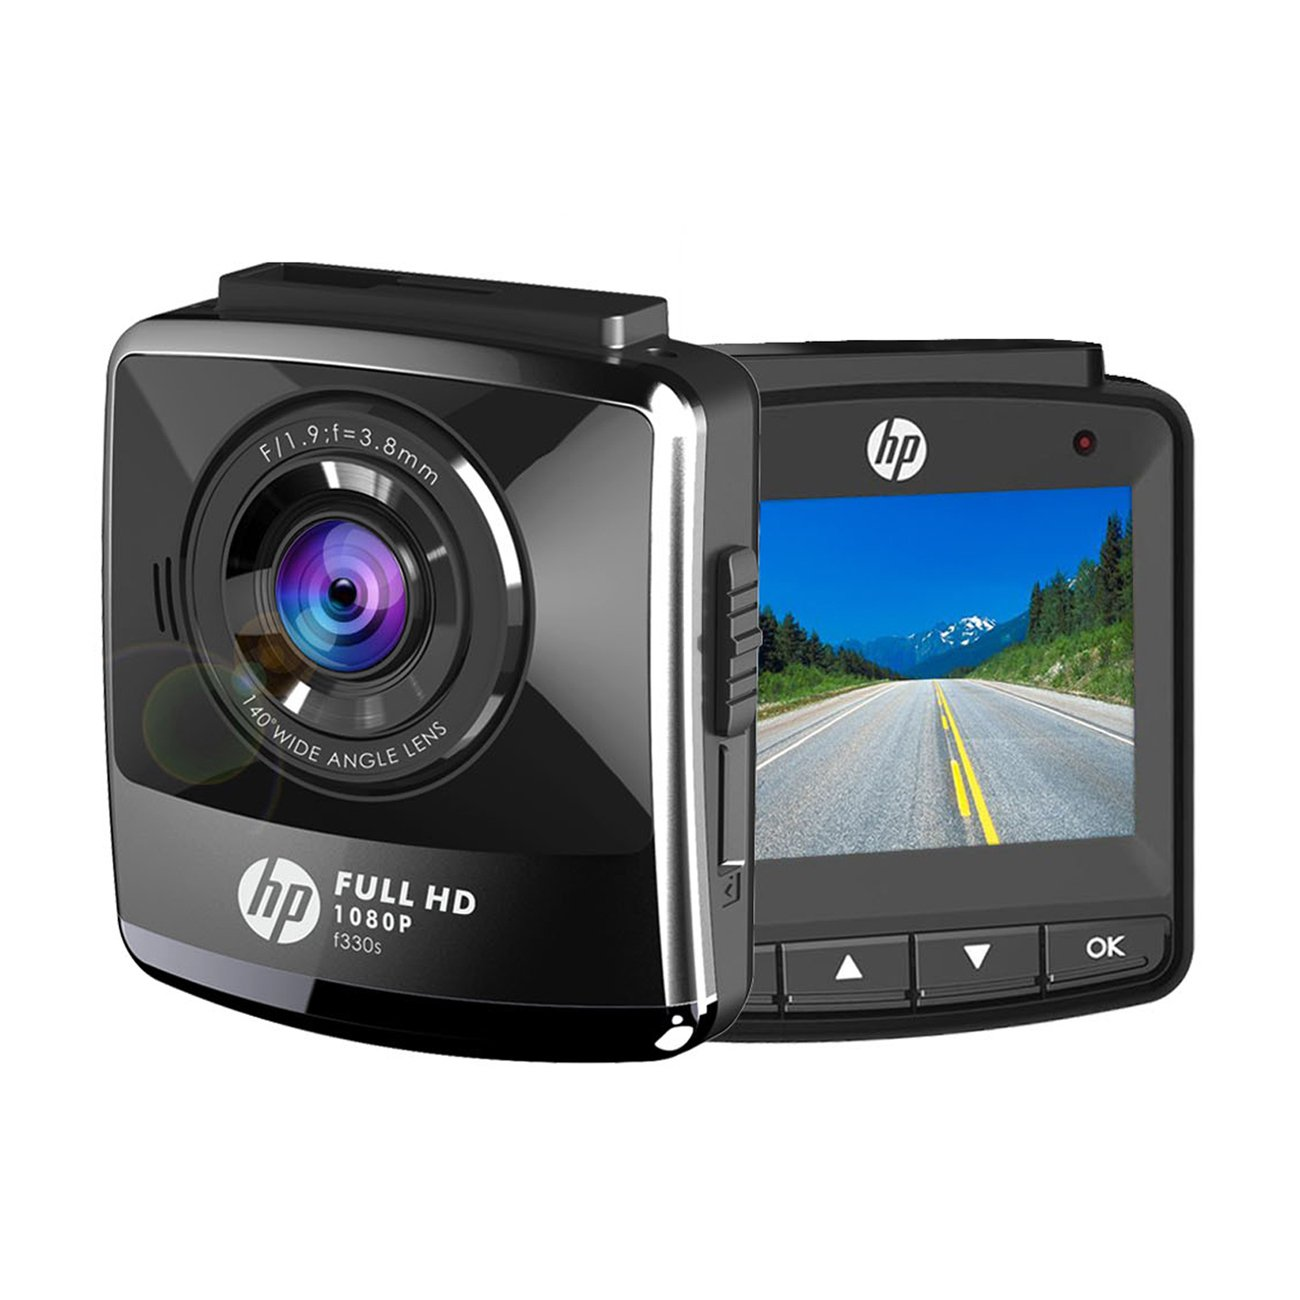 HP Dash Cam For Cars Full HD 1080P DVR Vehicle Dashboard Camera Recorder,2.4'' LCD,G-Sensor, Night Vision, WDR, Parking Guard, Loop Recording,Invisible